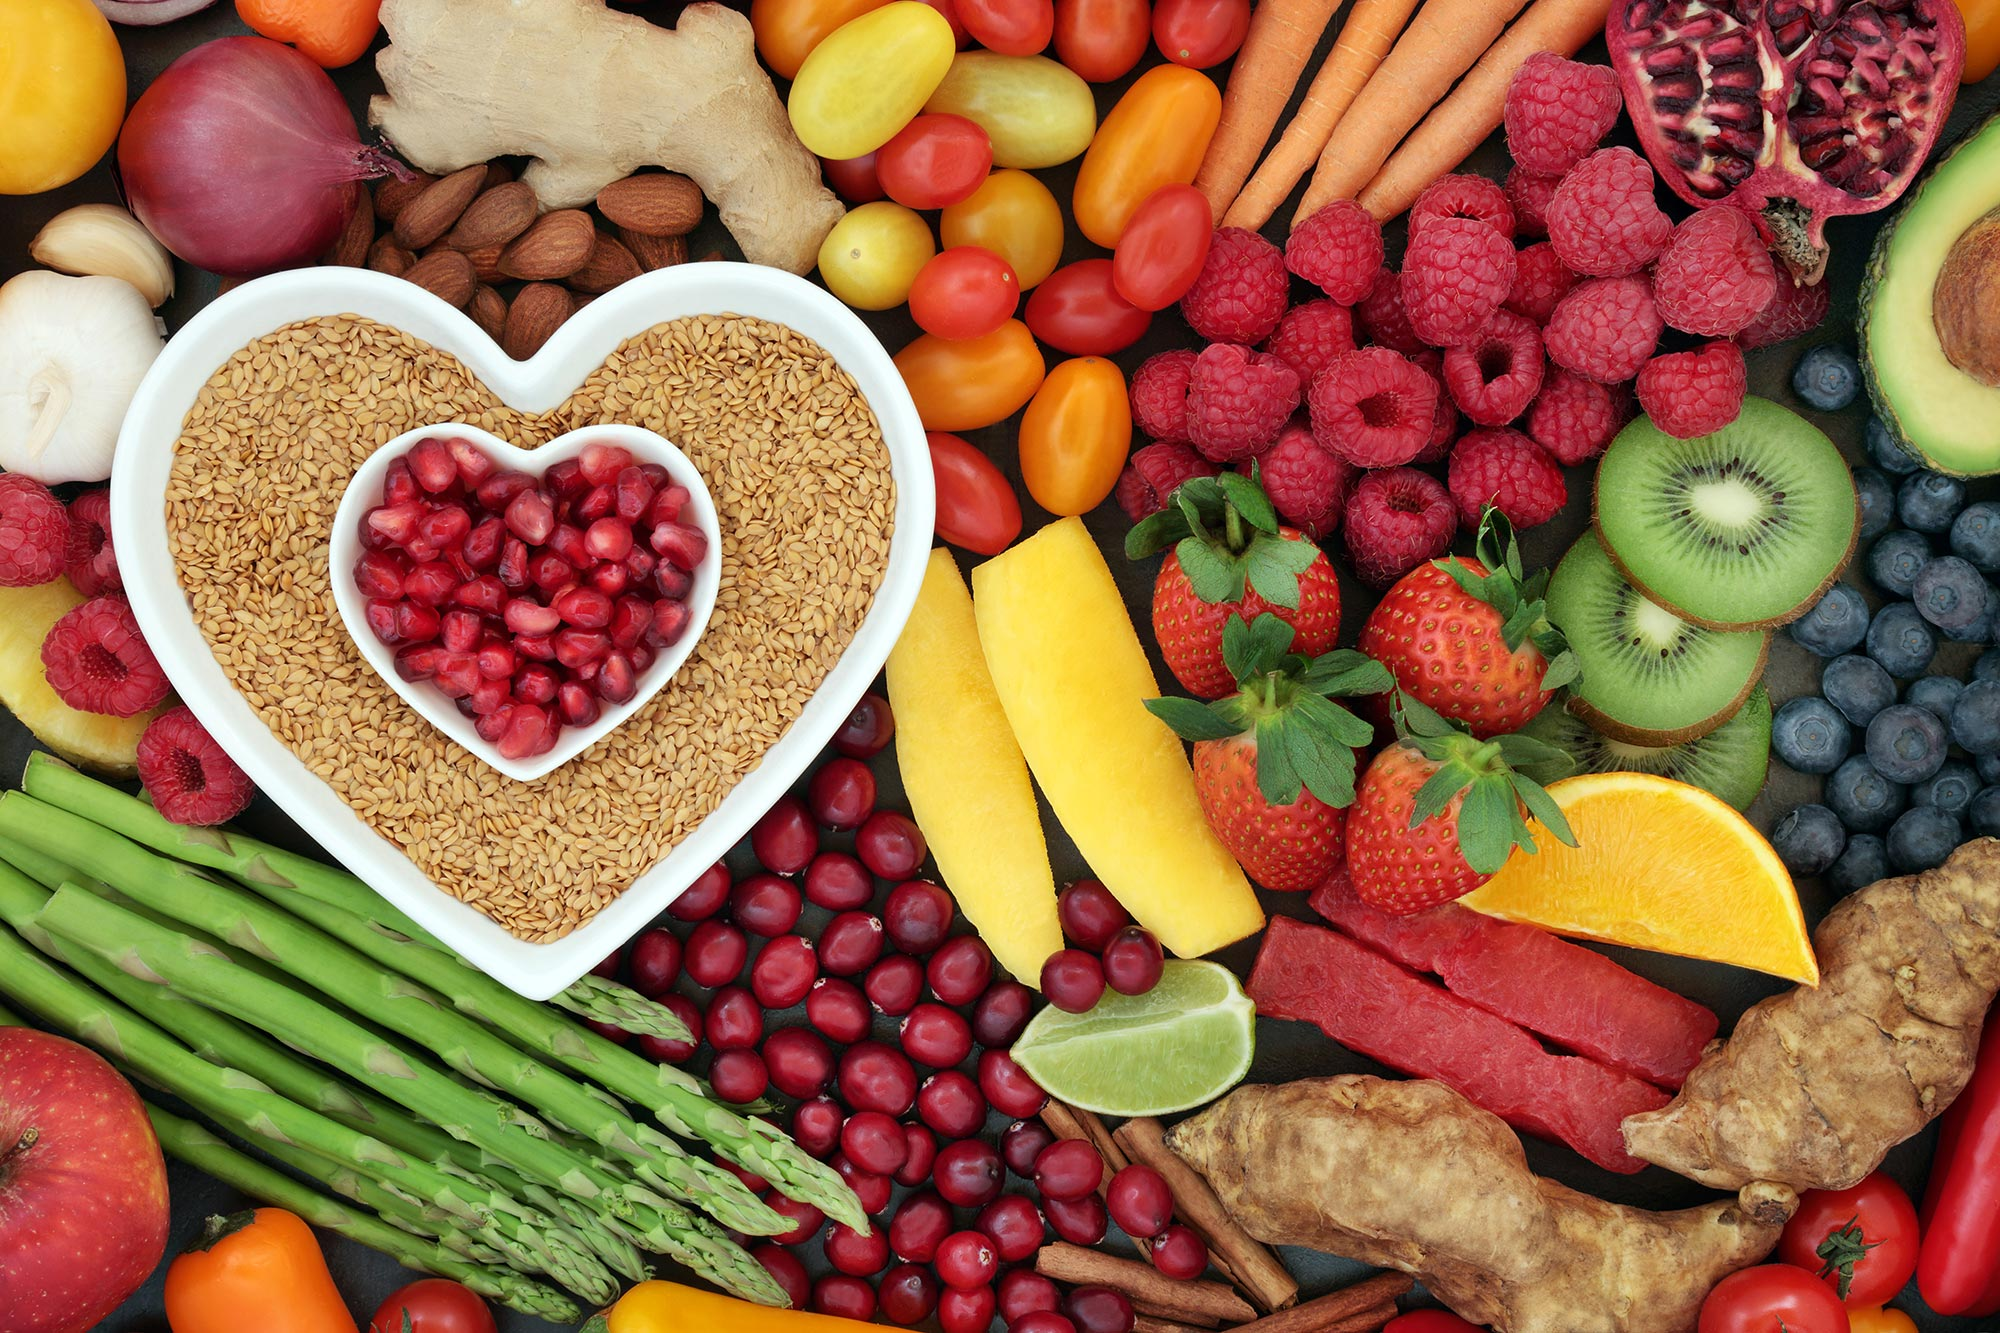 Lower Protein Diet May Lessen Risk for Heart Disease